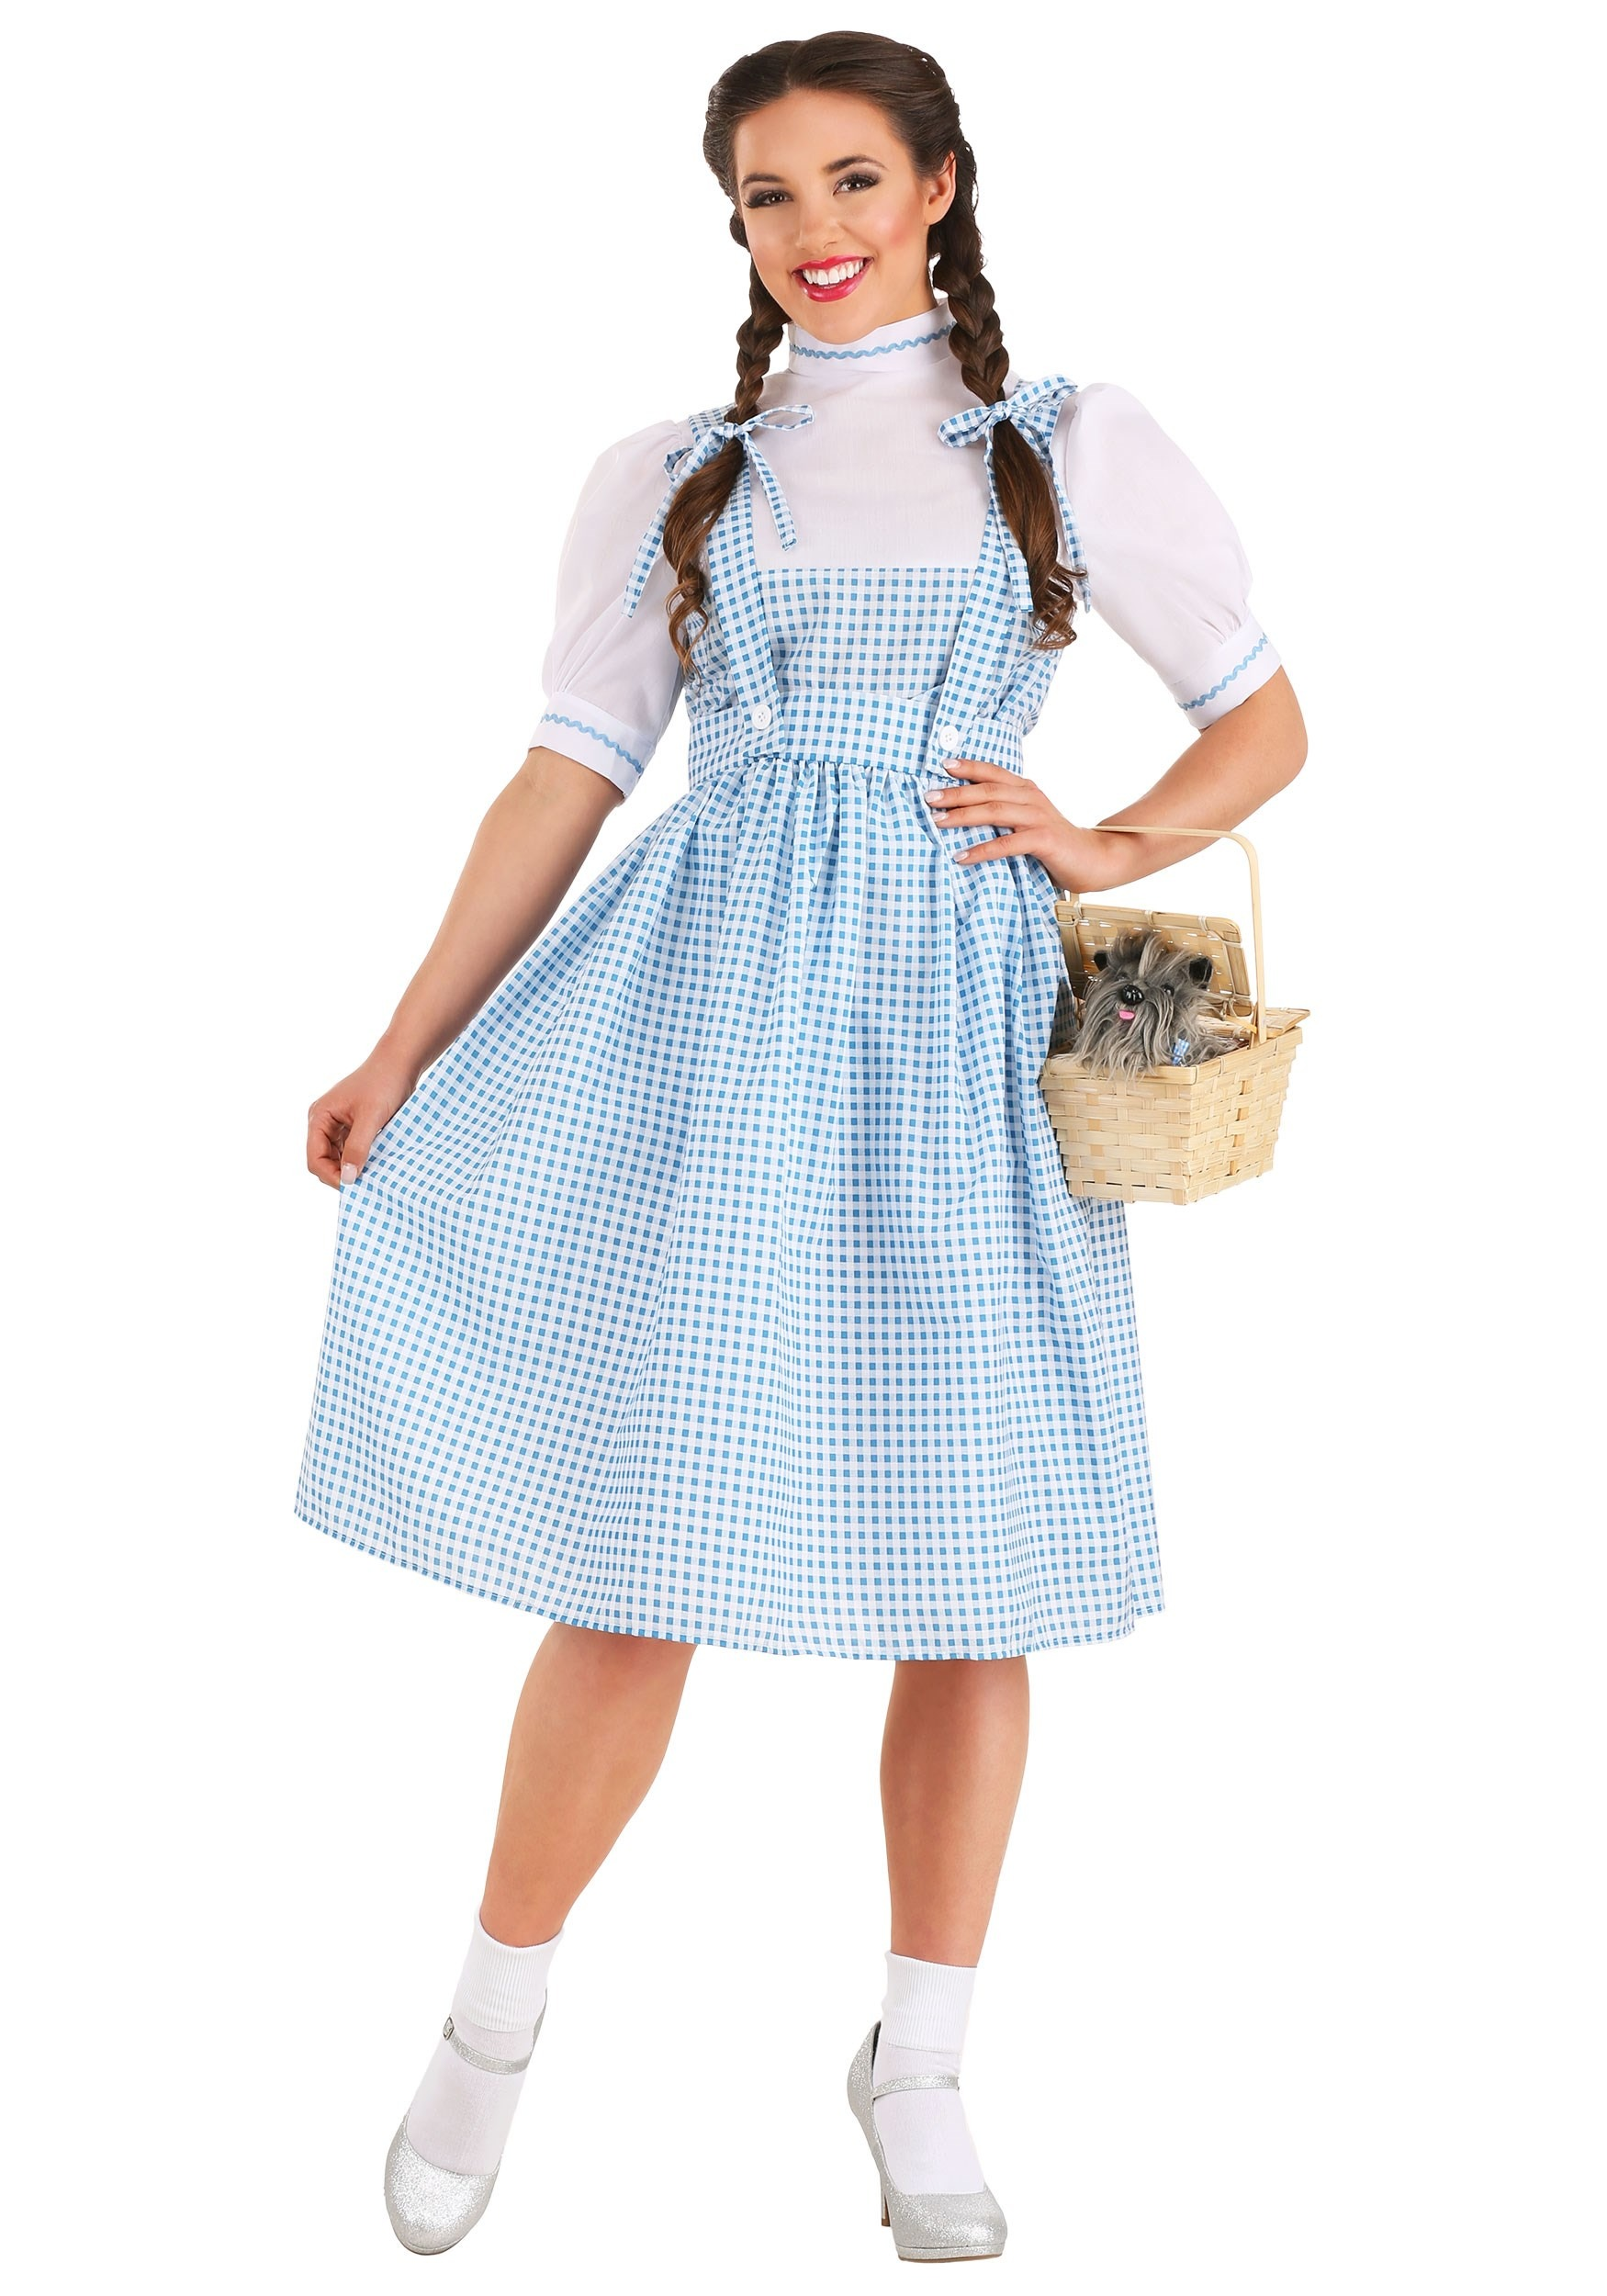 Adult Plus Size Dorothy Costume  sc 1 st  Halloween Costumes & Adult Plus Size Kansas Girl Costume 1X 2X 3X 4X 5X 6X 7X